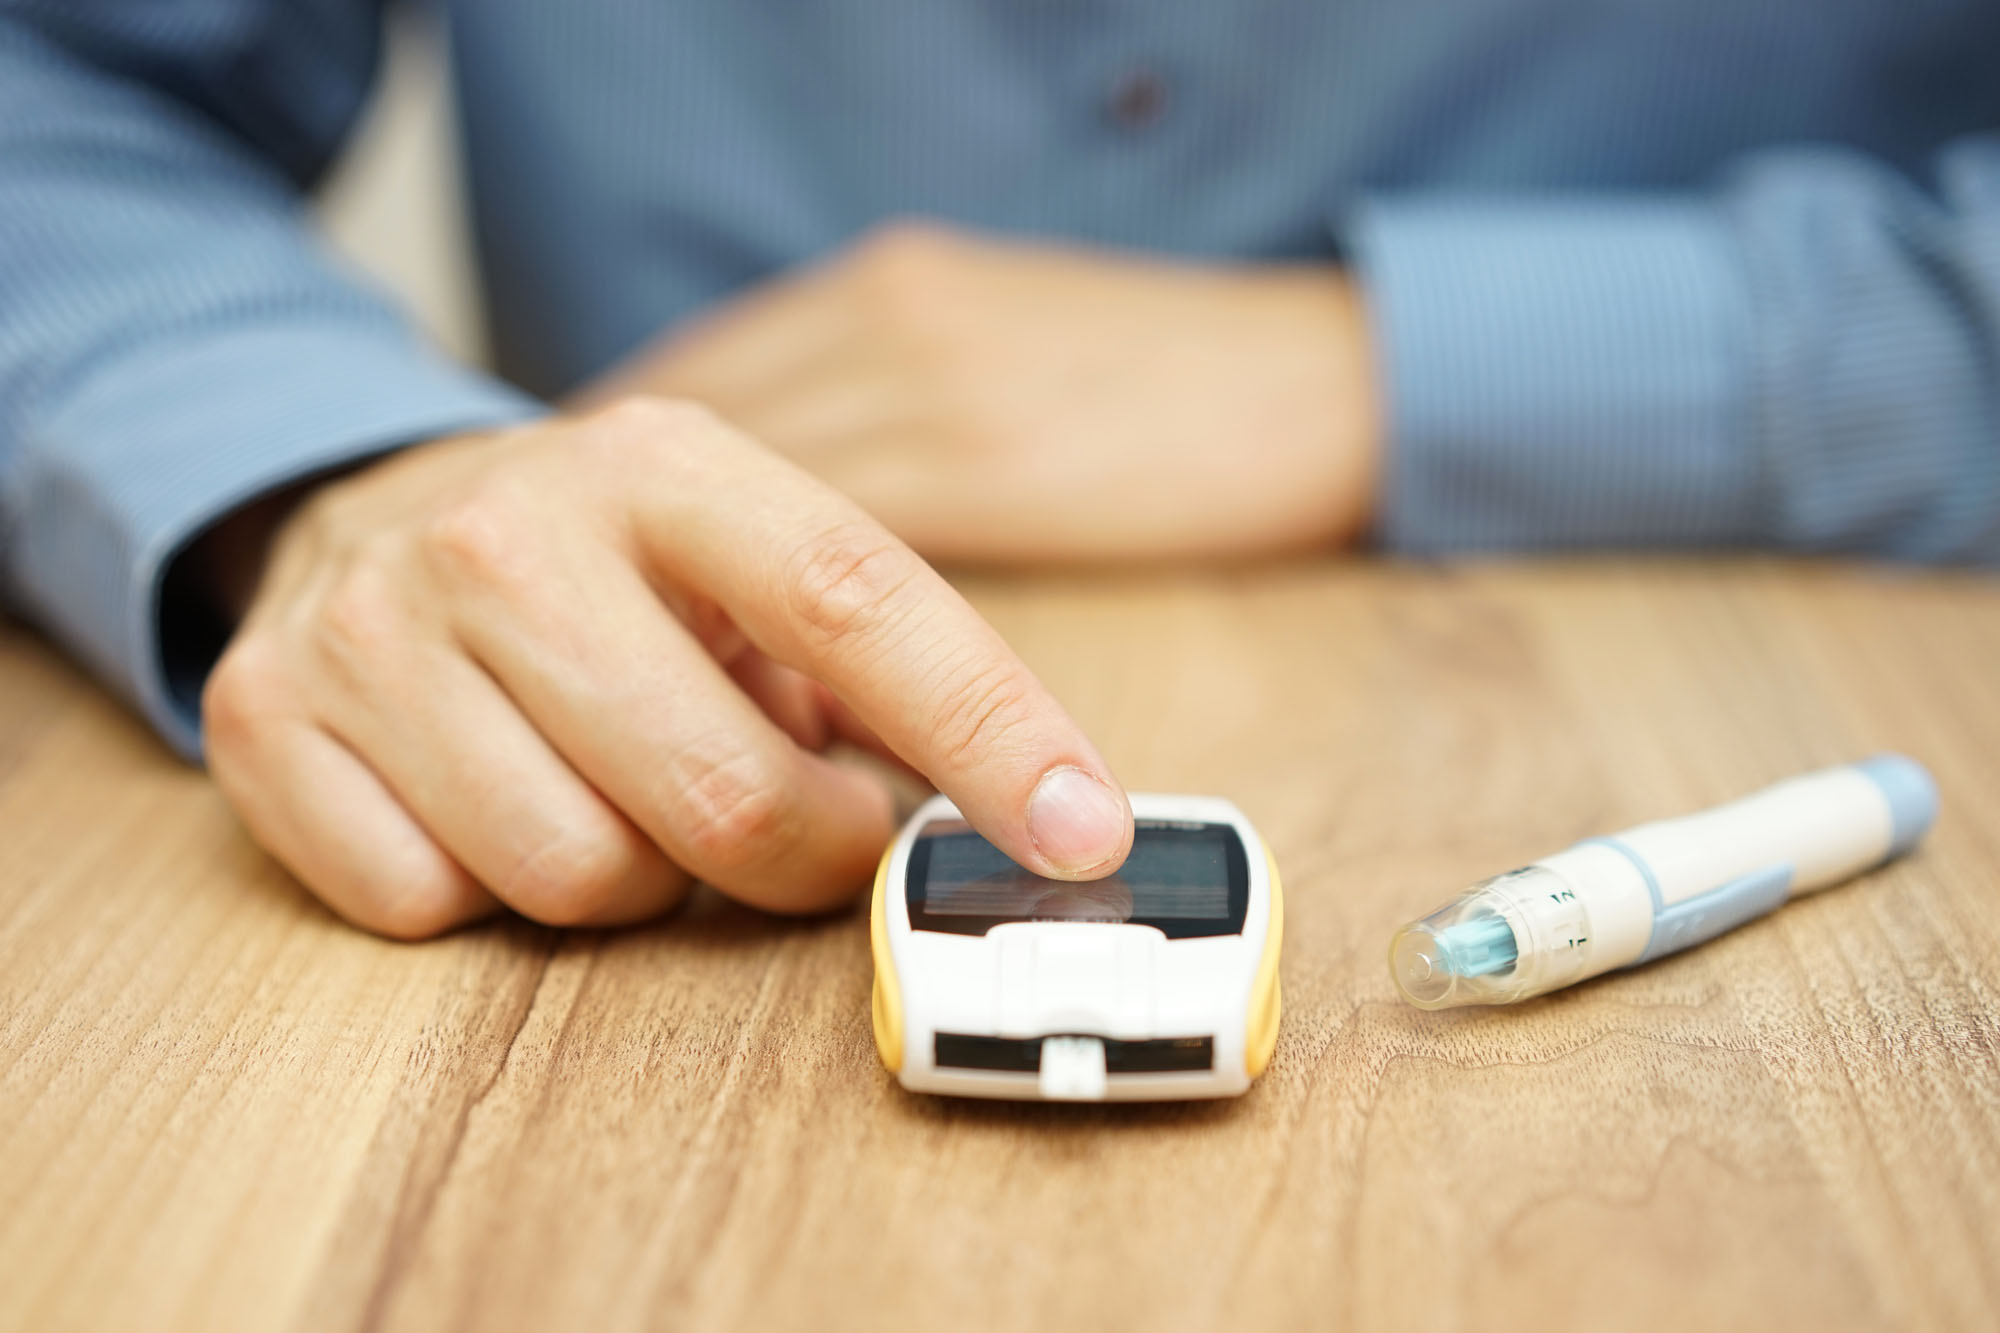 Taking stock: Type 1 diabetics who use testing strips should make sure they have enough for their stay in Japan, just in case clinics or pharmacies don't stock their particular brand. | GETTY IMAGES